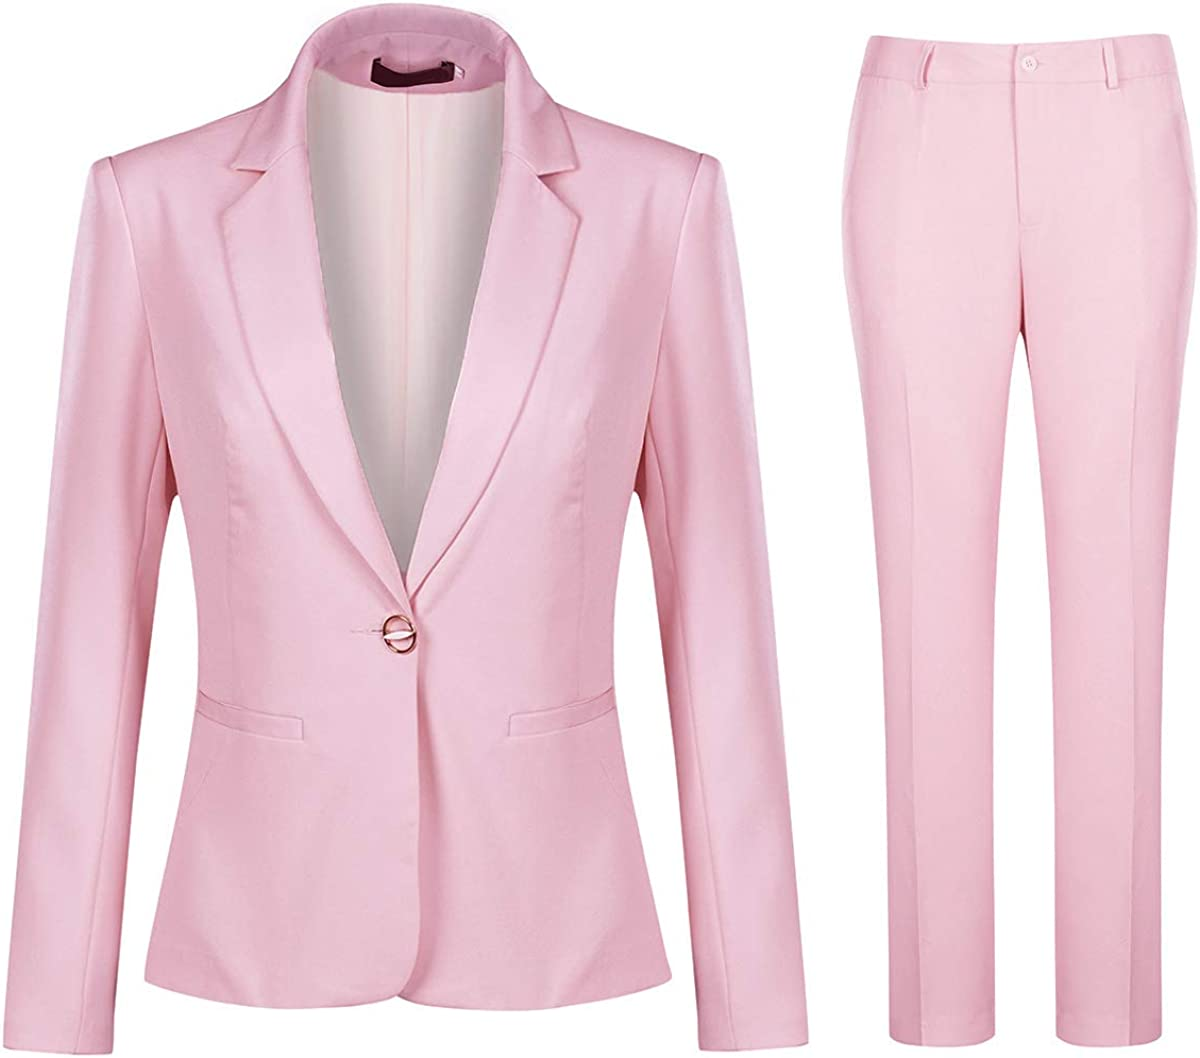 Women's 2 Piece Office Work Suit Set One Button Blazer and Pants